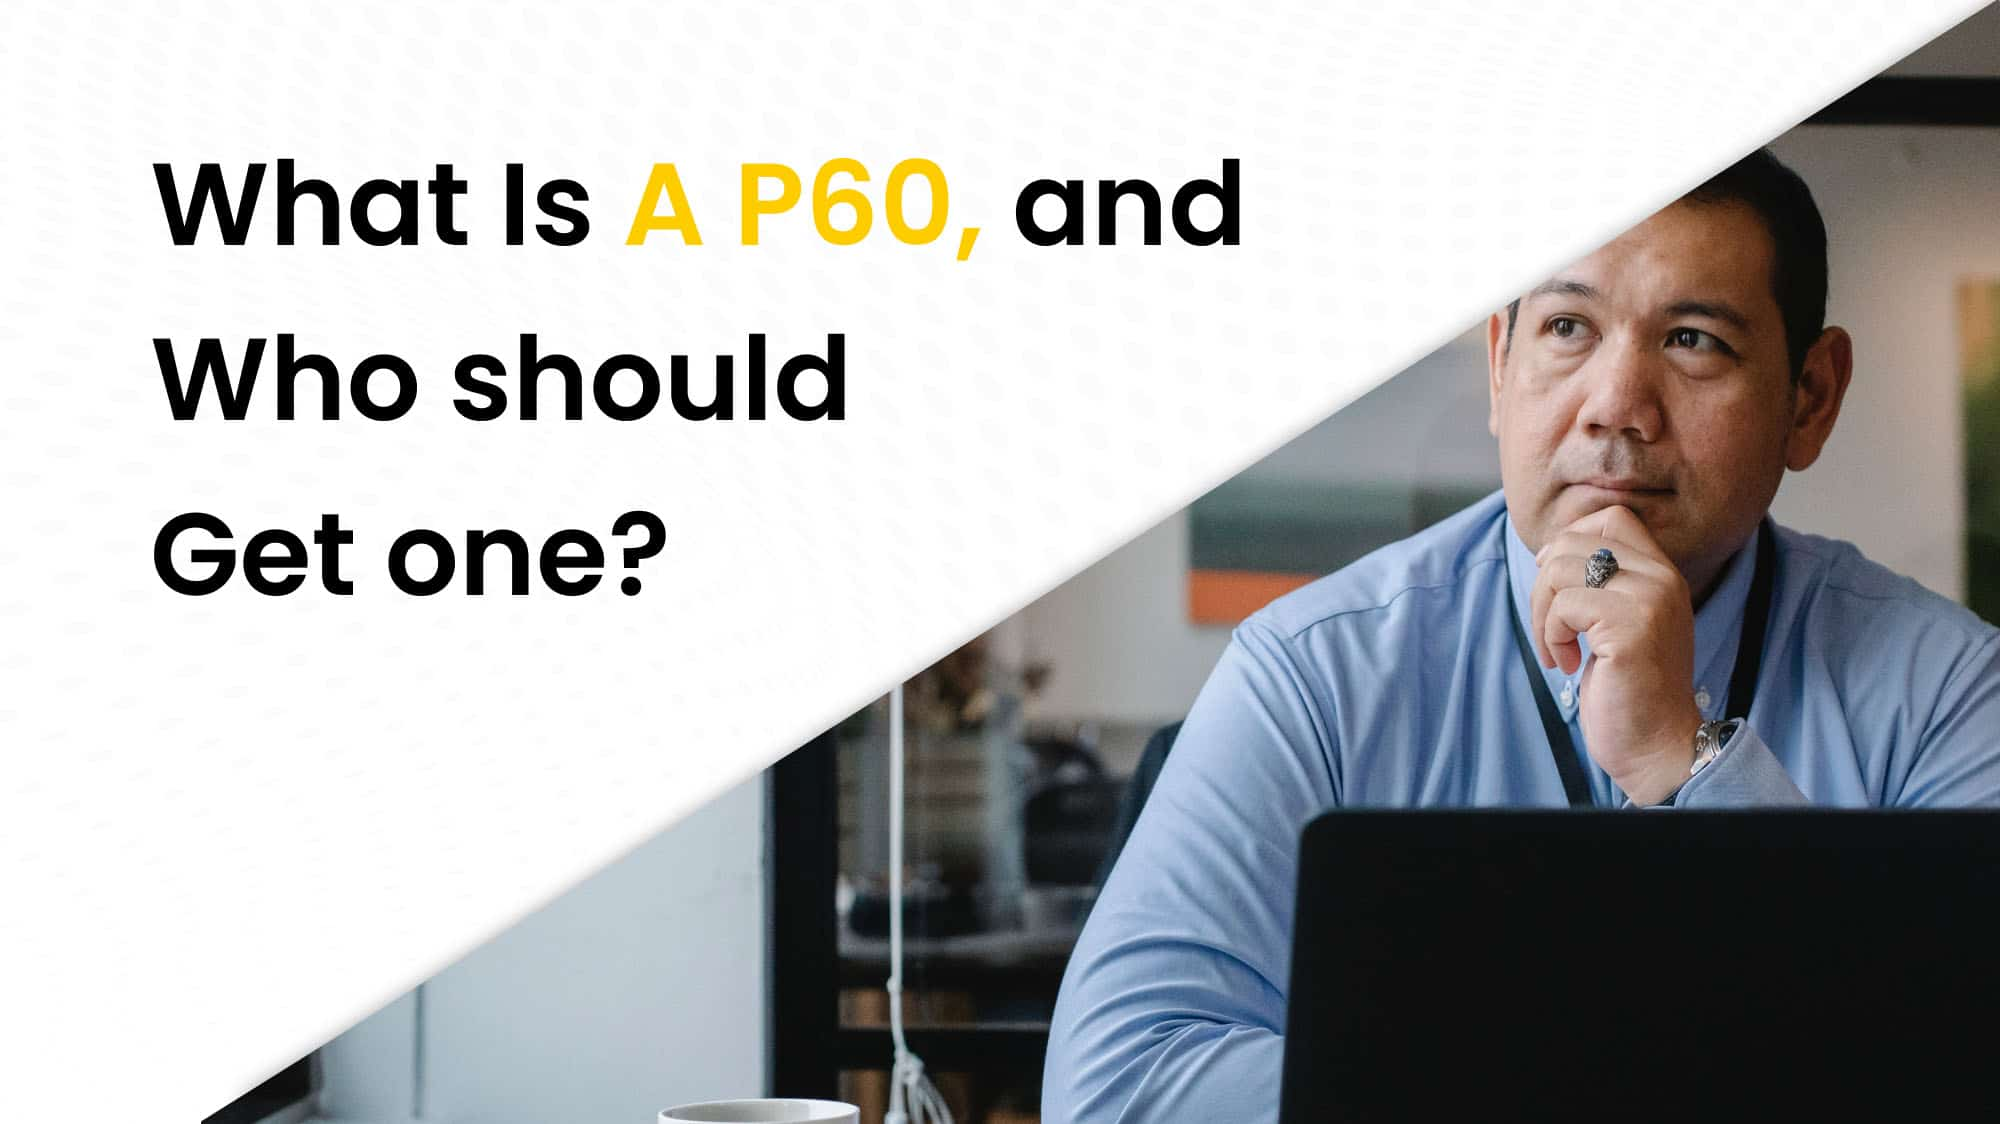 What is a P60